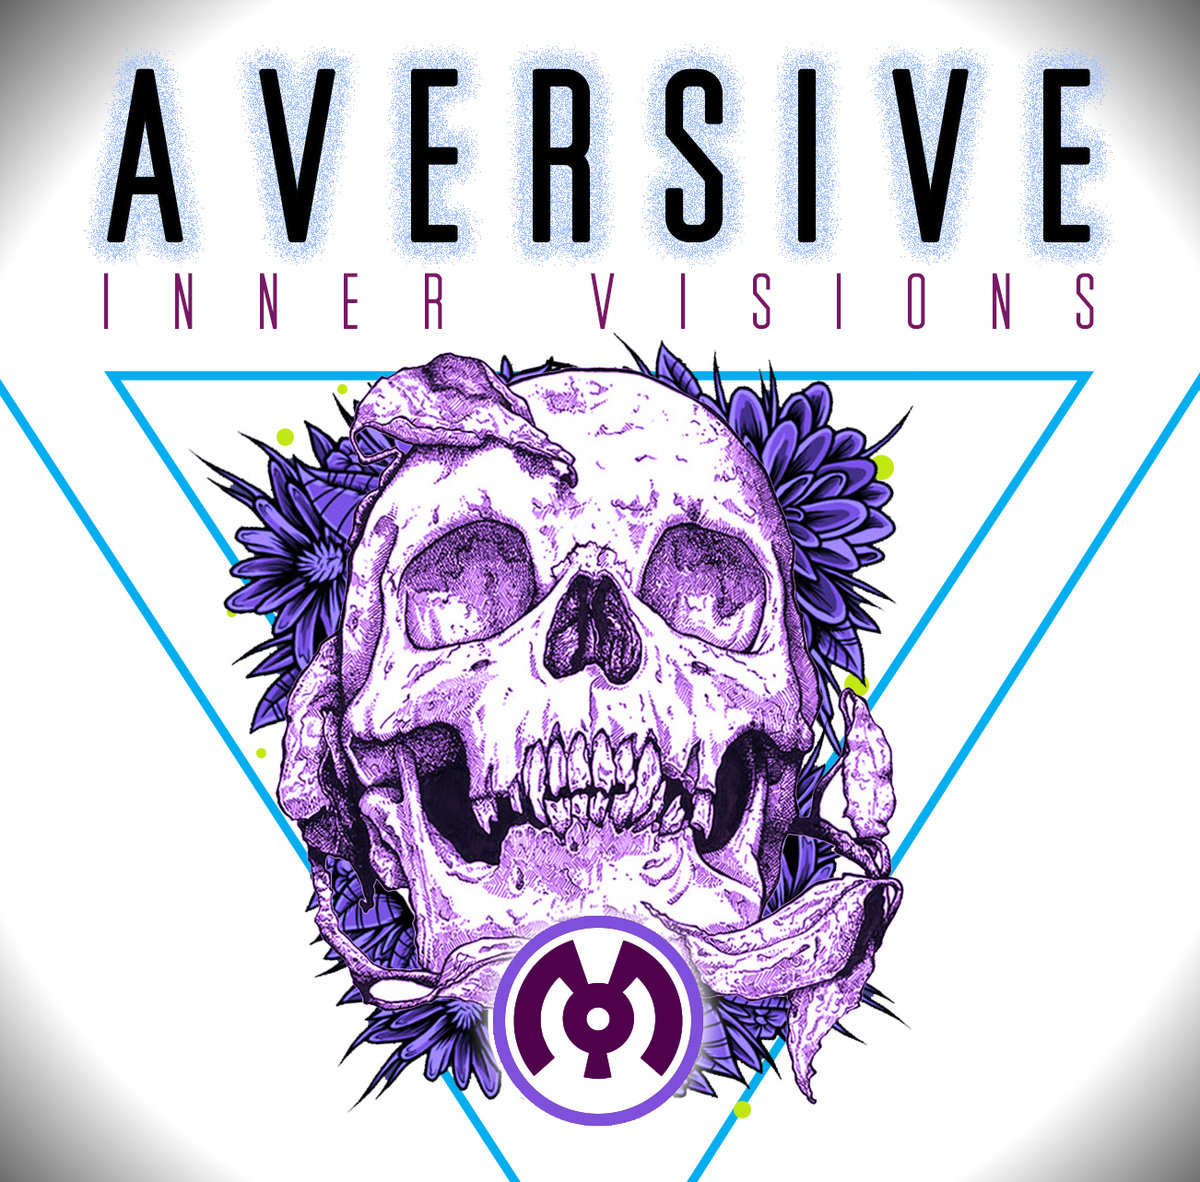 Aversive - Ghetto @ 'Inner Visions' album (electronic, dubstep)